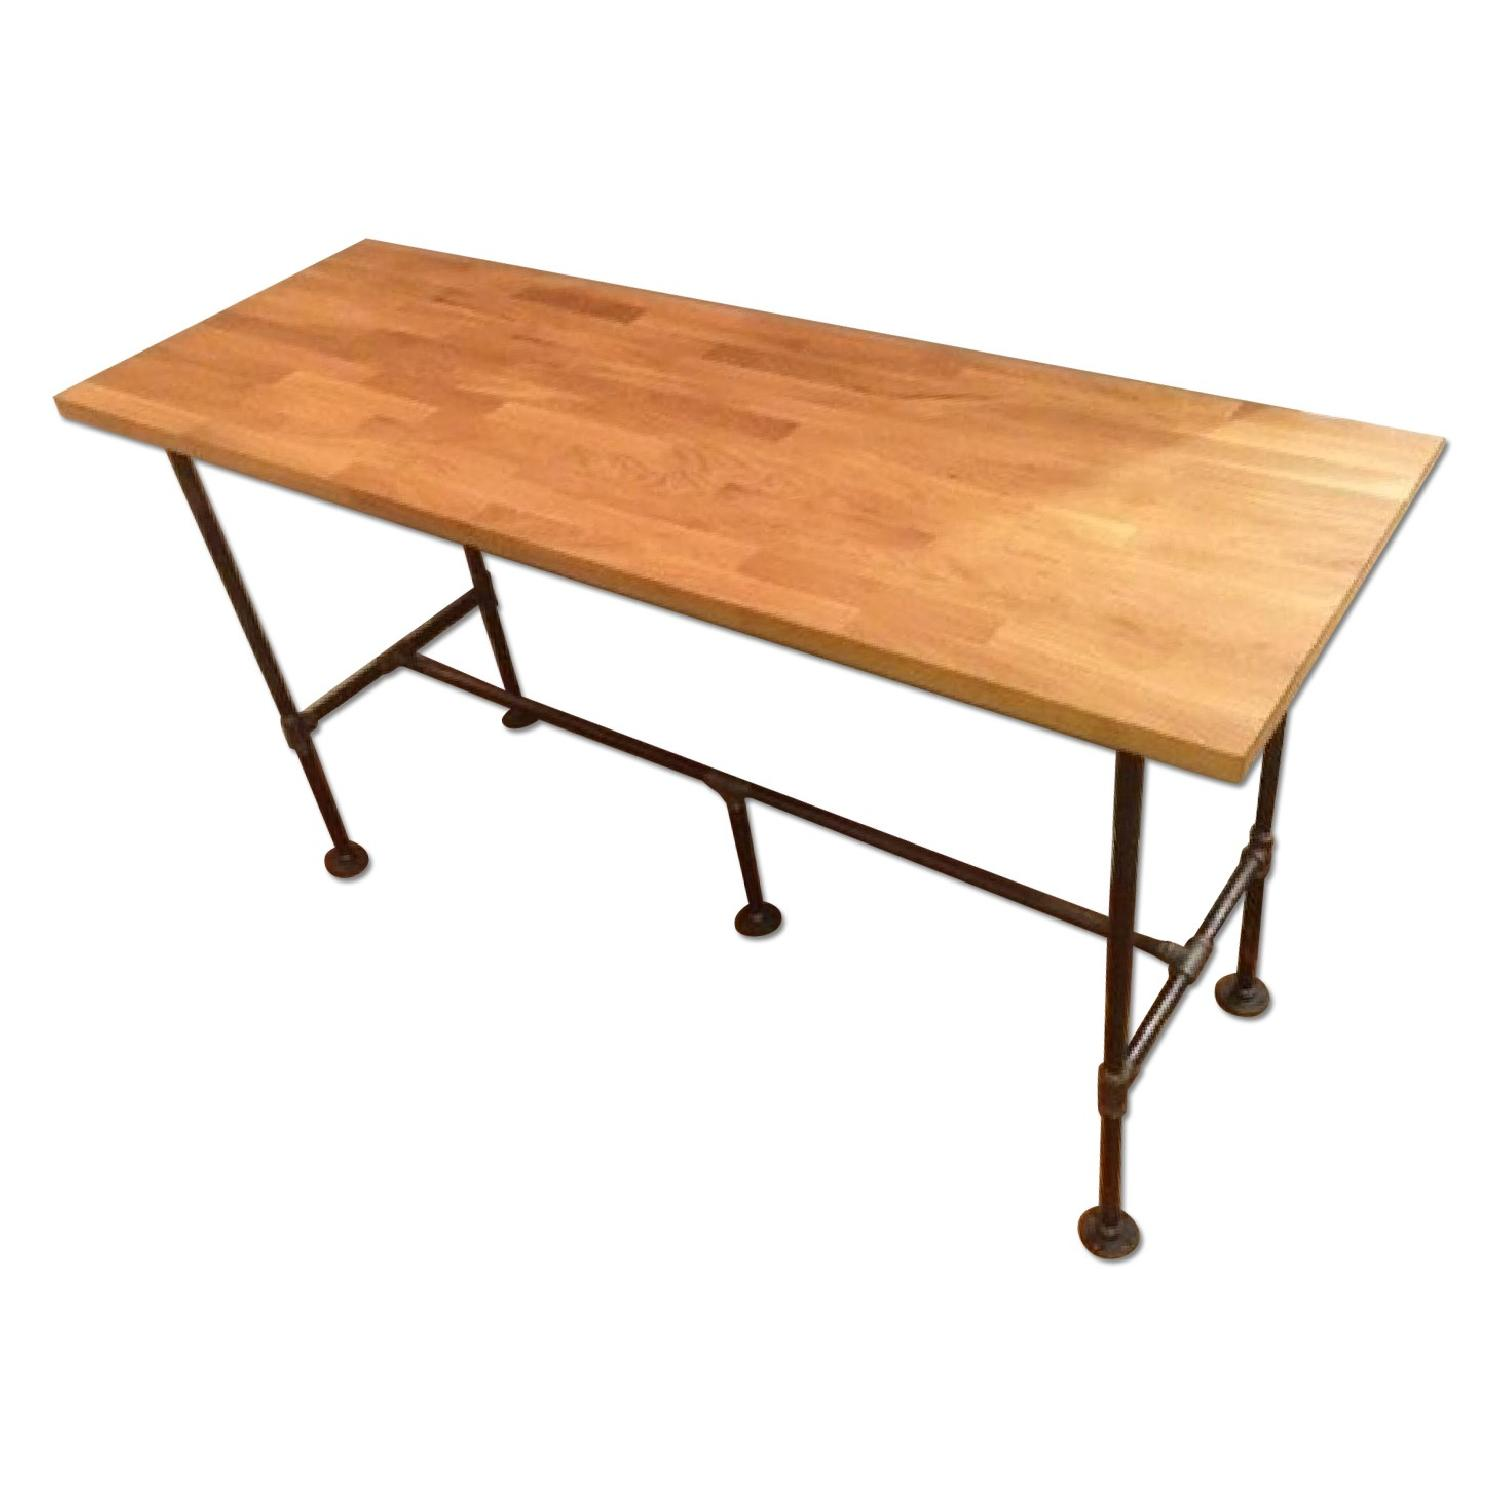 Industrial High Top Counter Dining Table Standing Desk